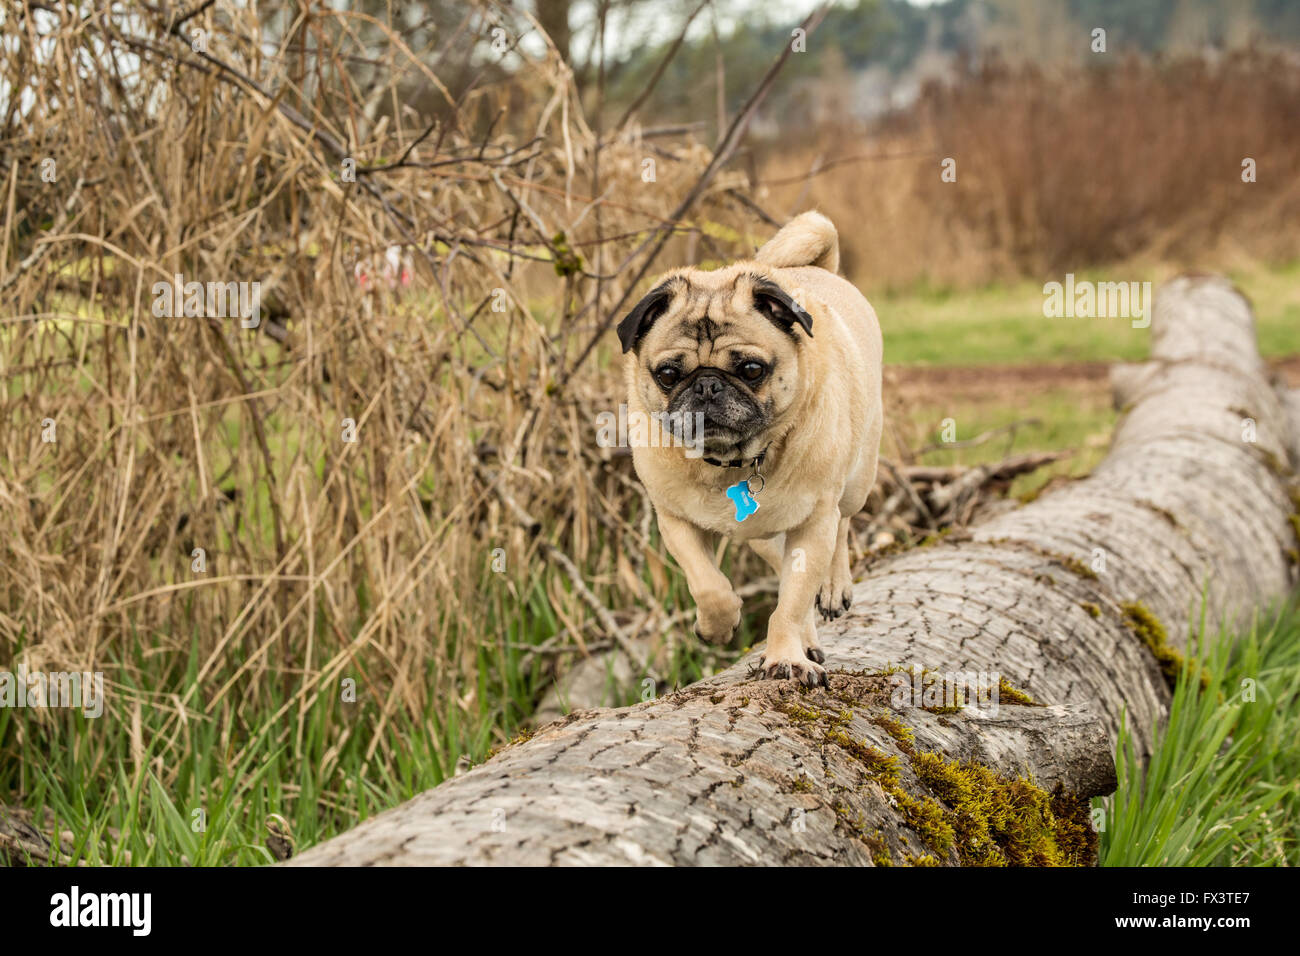 Fawn-colored Pug, Buddy,walking on a fallen tree in Marymoor Park in Redmond, Washington, USA - Stock Image